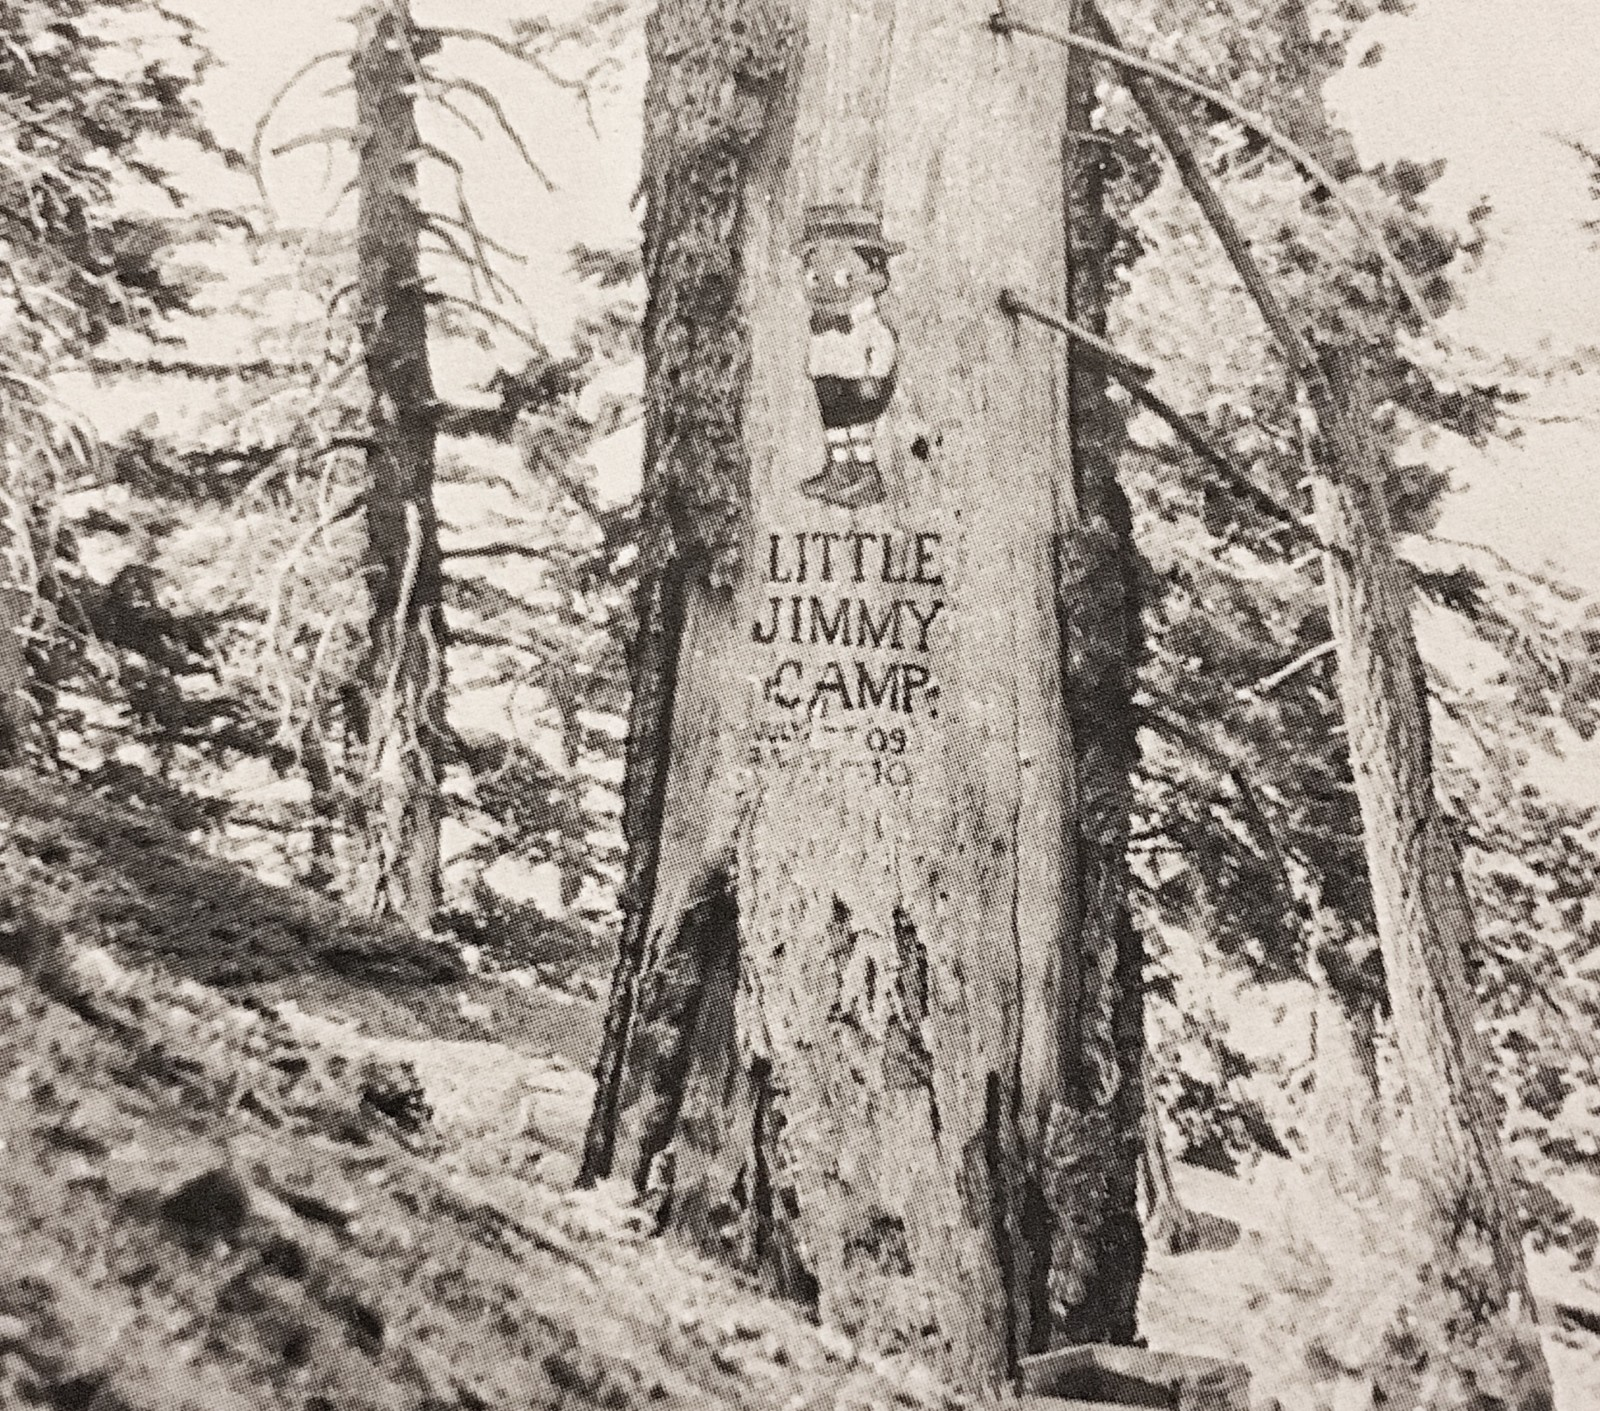 Little Jimmy Campground history